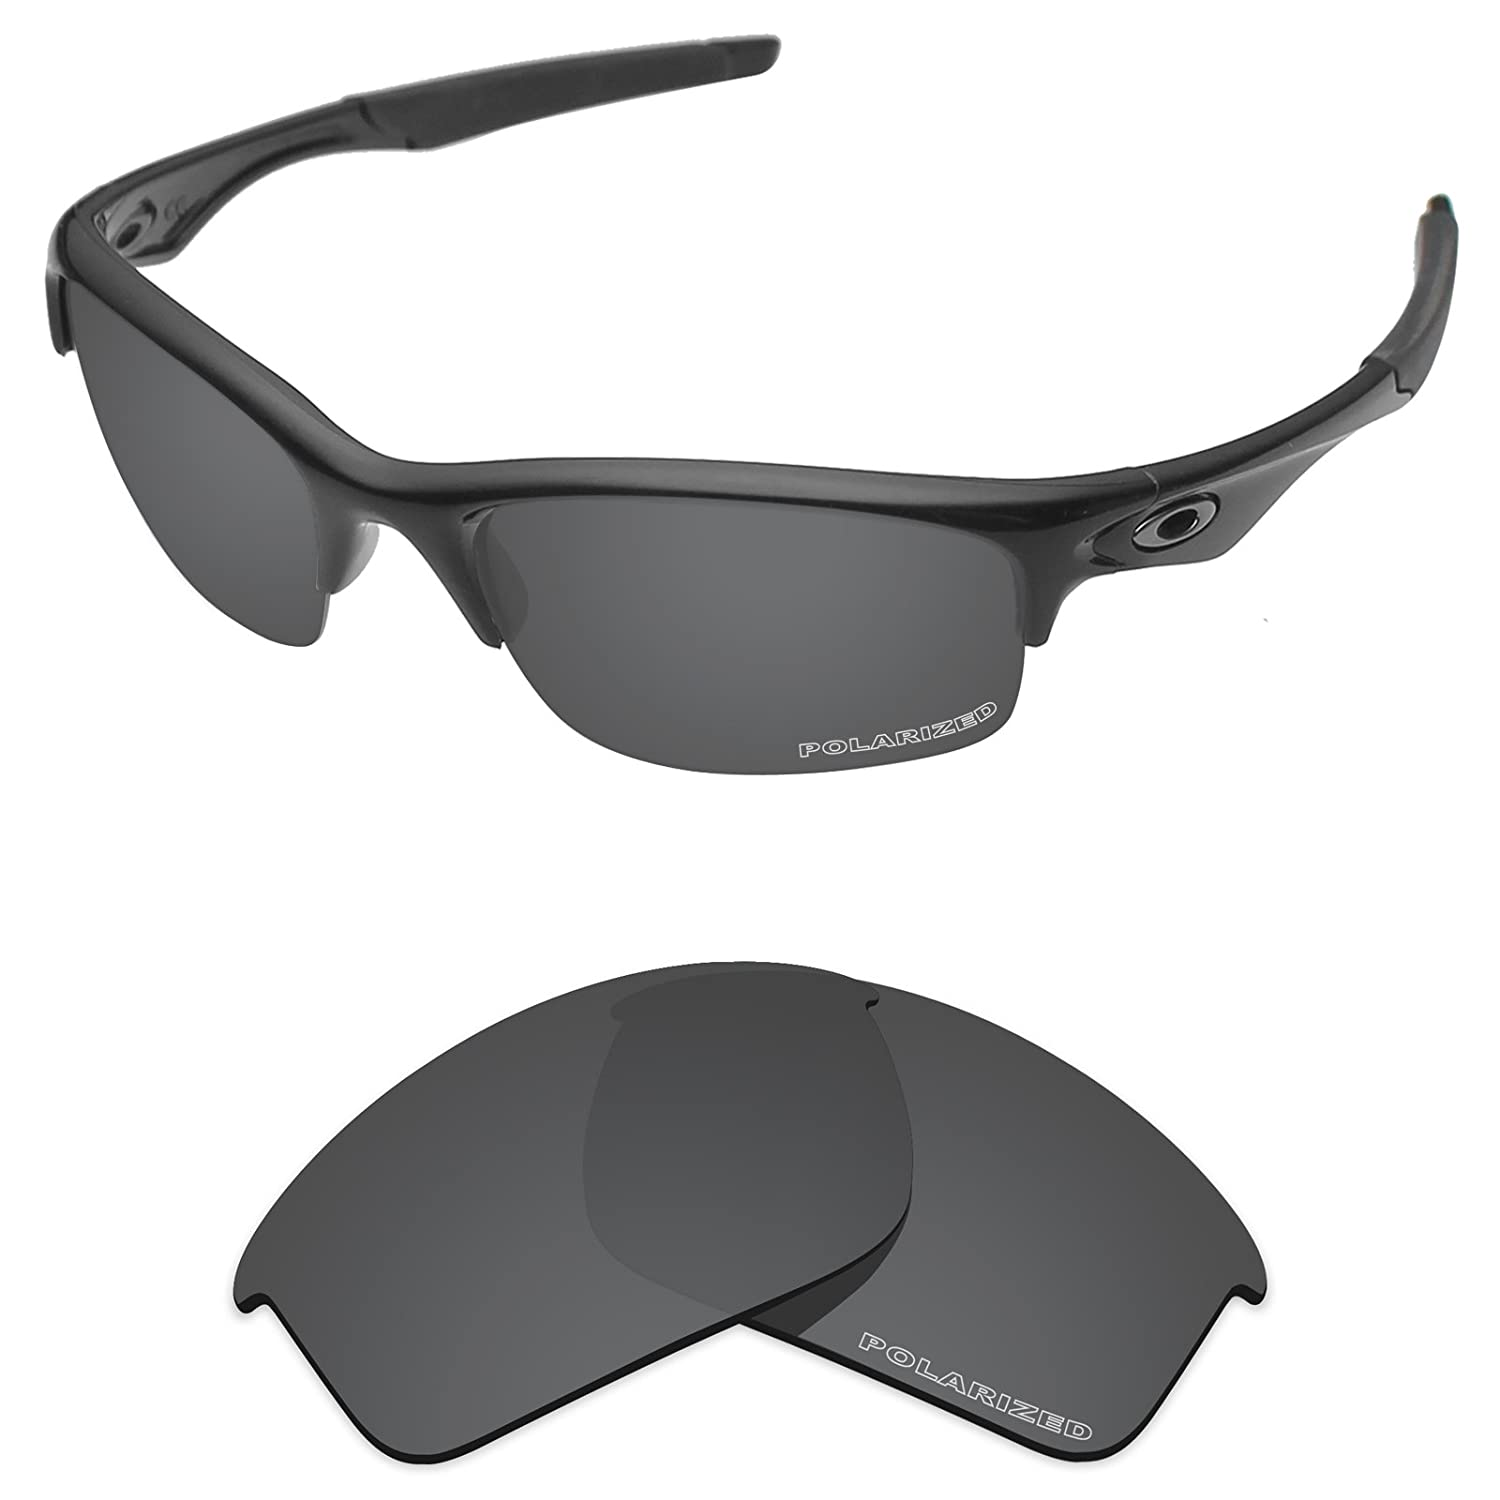 9064c2f233 Amazon.com  Tintart Performance Lenses Compatible with Oakley Bottle Rocket  Polarized Etched-Carbon Black  Clothing